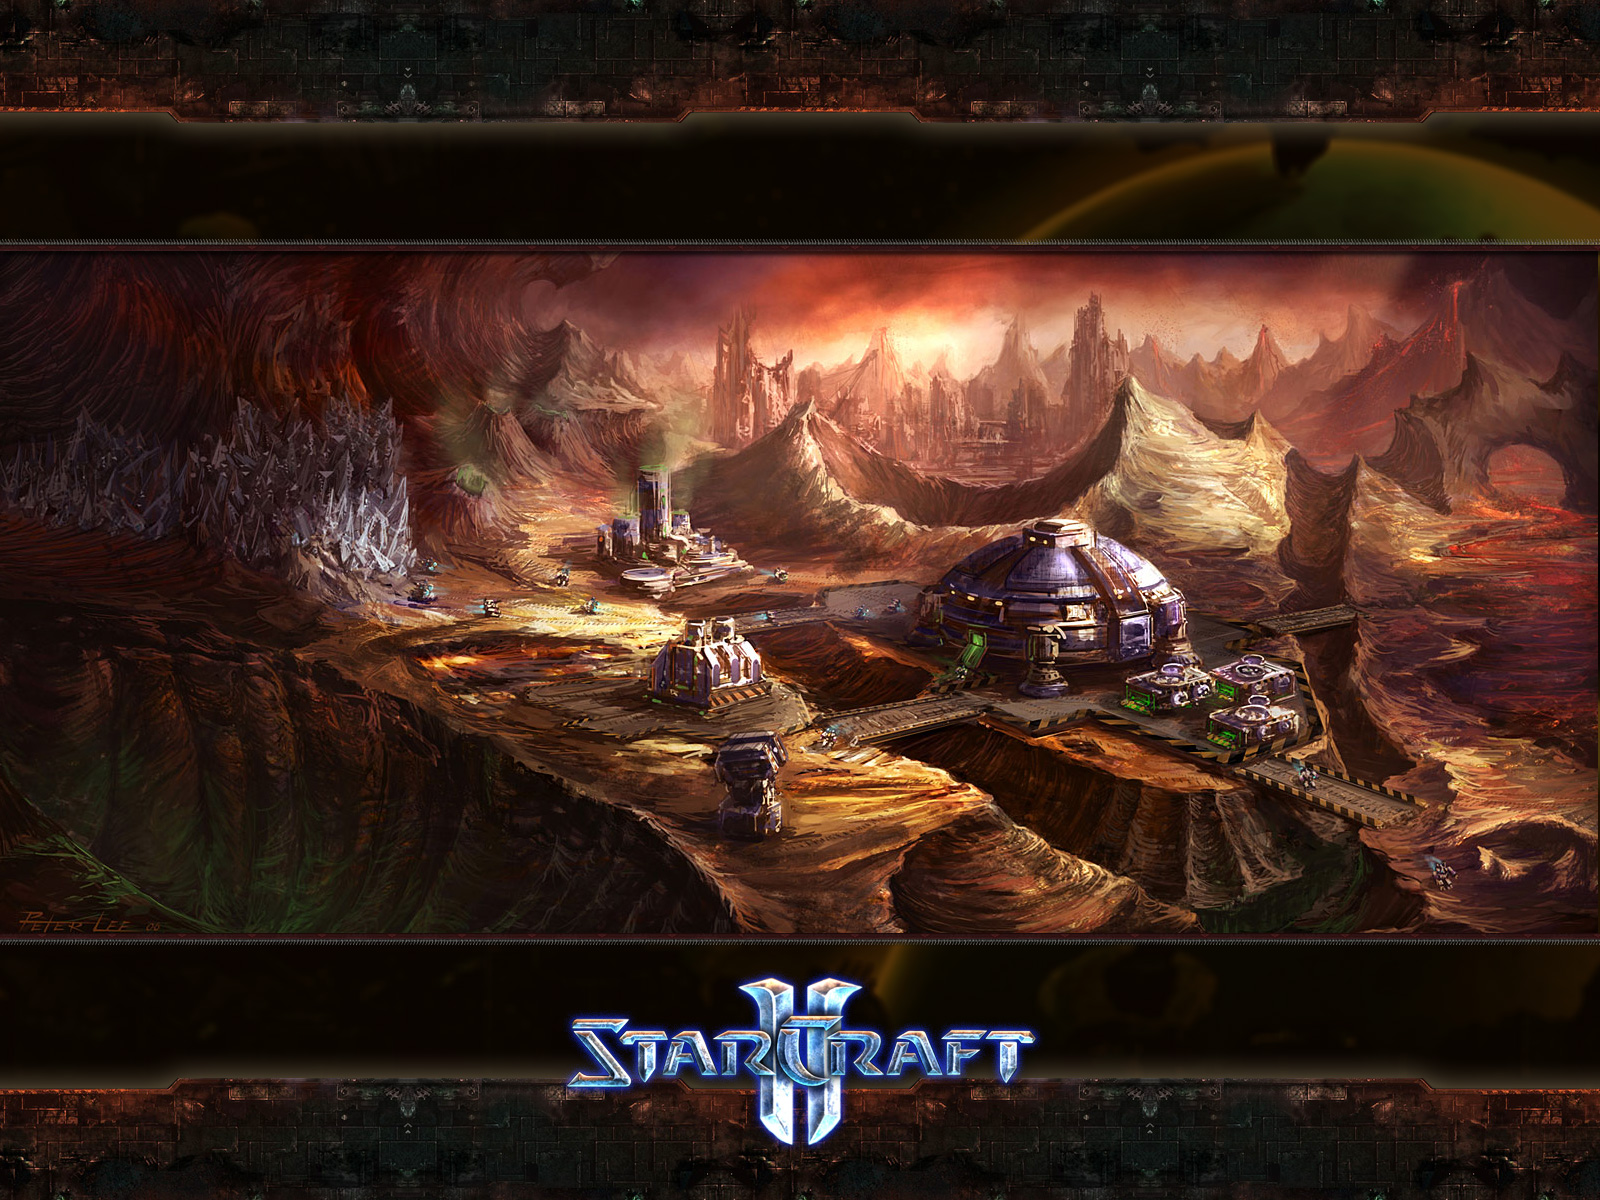 starcraft wallpaper hd11 Hd Wallpapers Starcraft 2